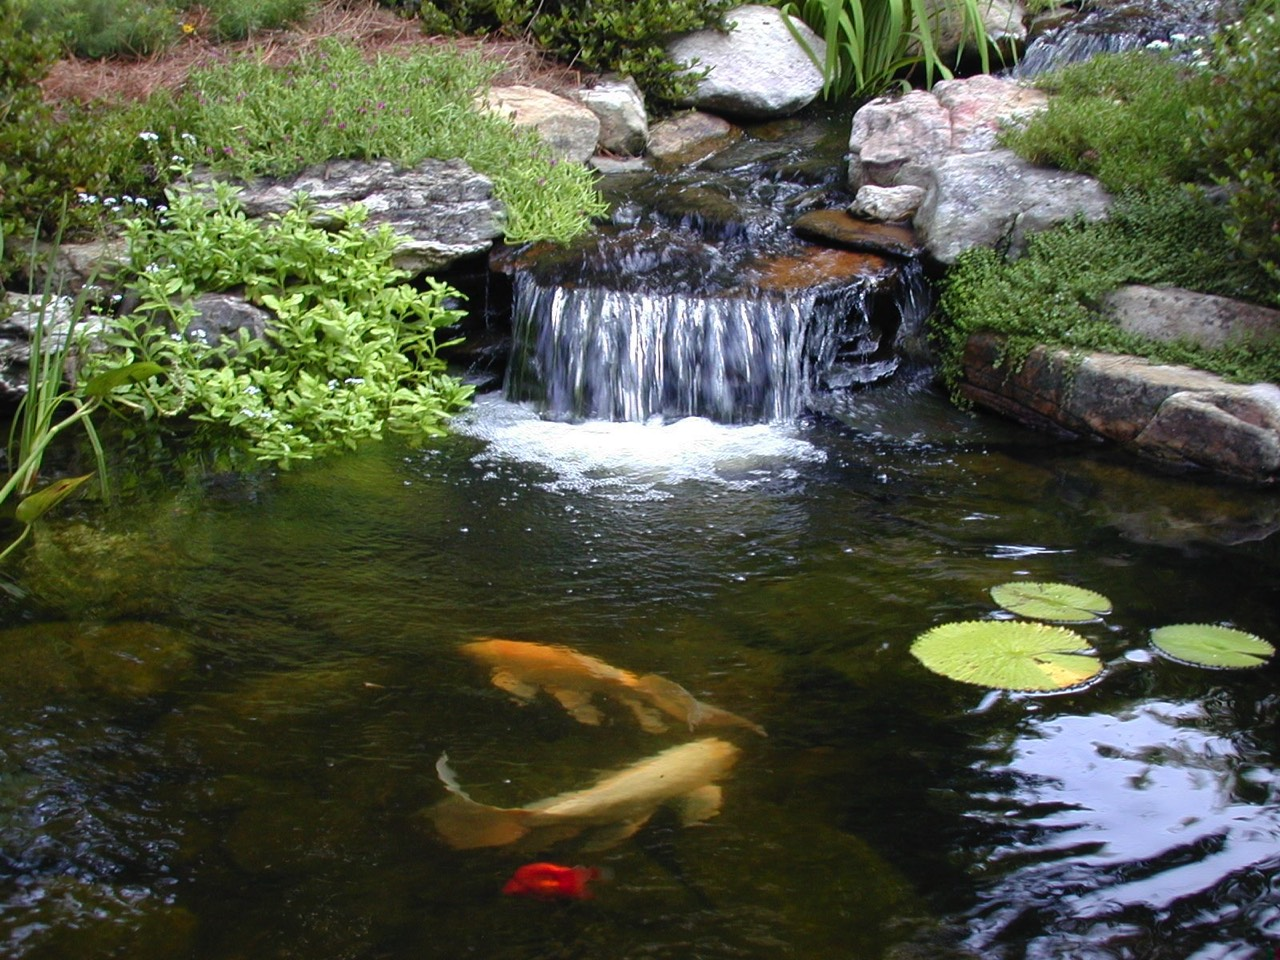 Sanctuary gardens designed specifically to be your unique for Koi pond garden